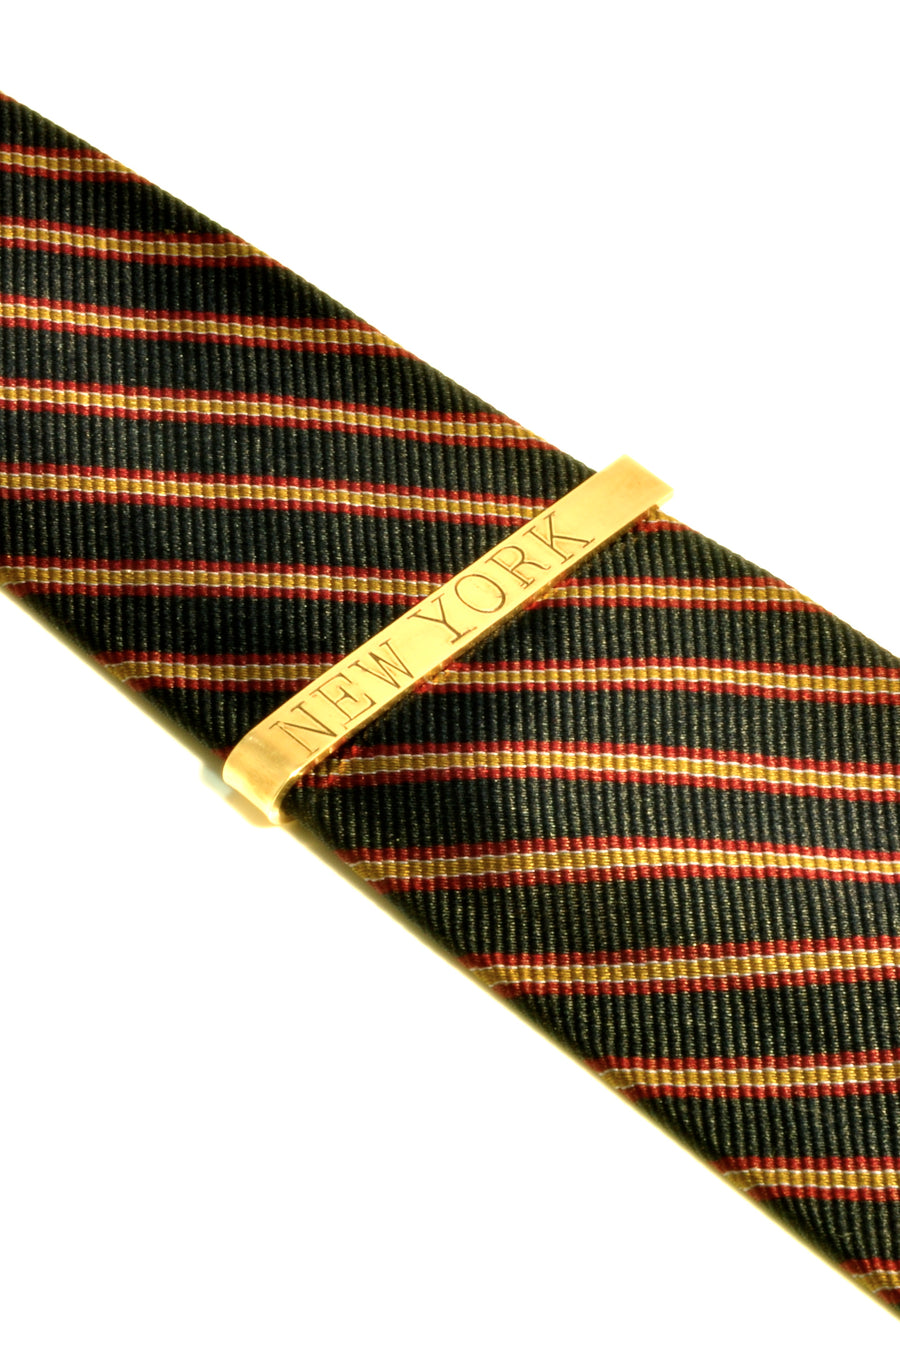 tie bar made in New York